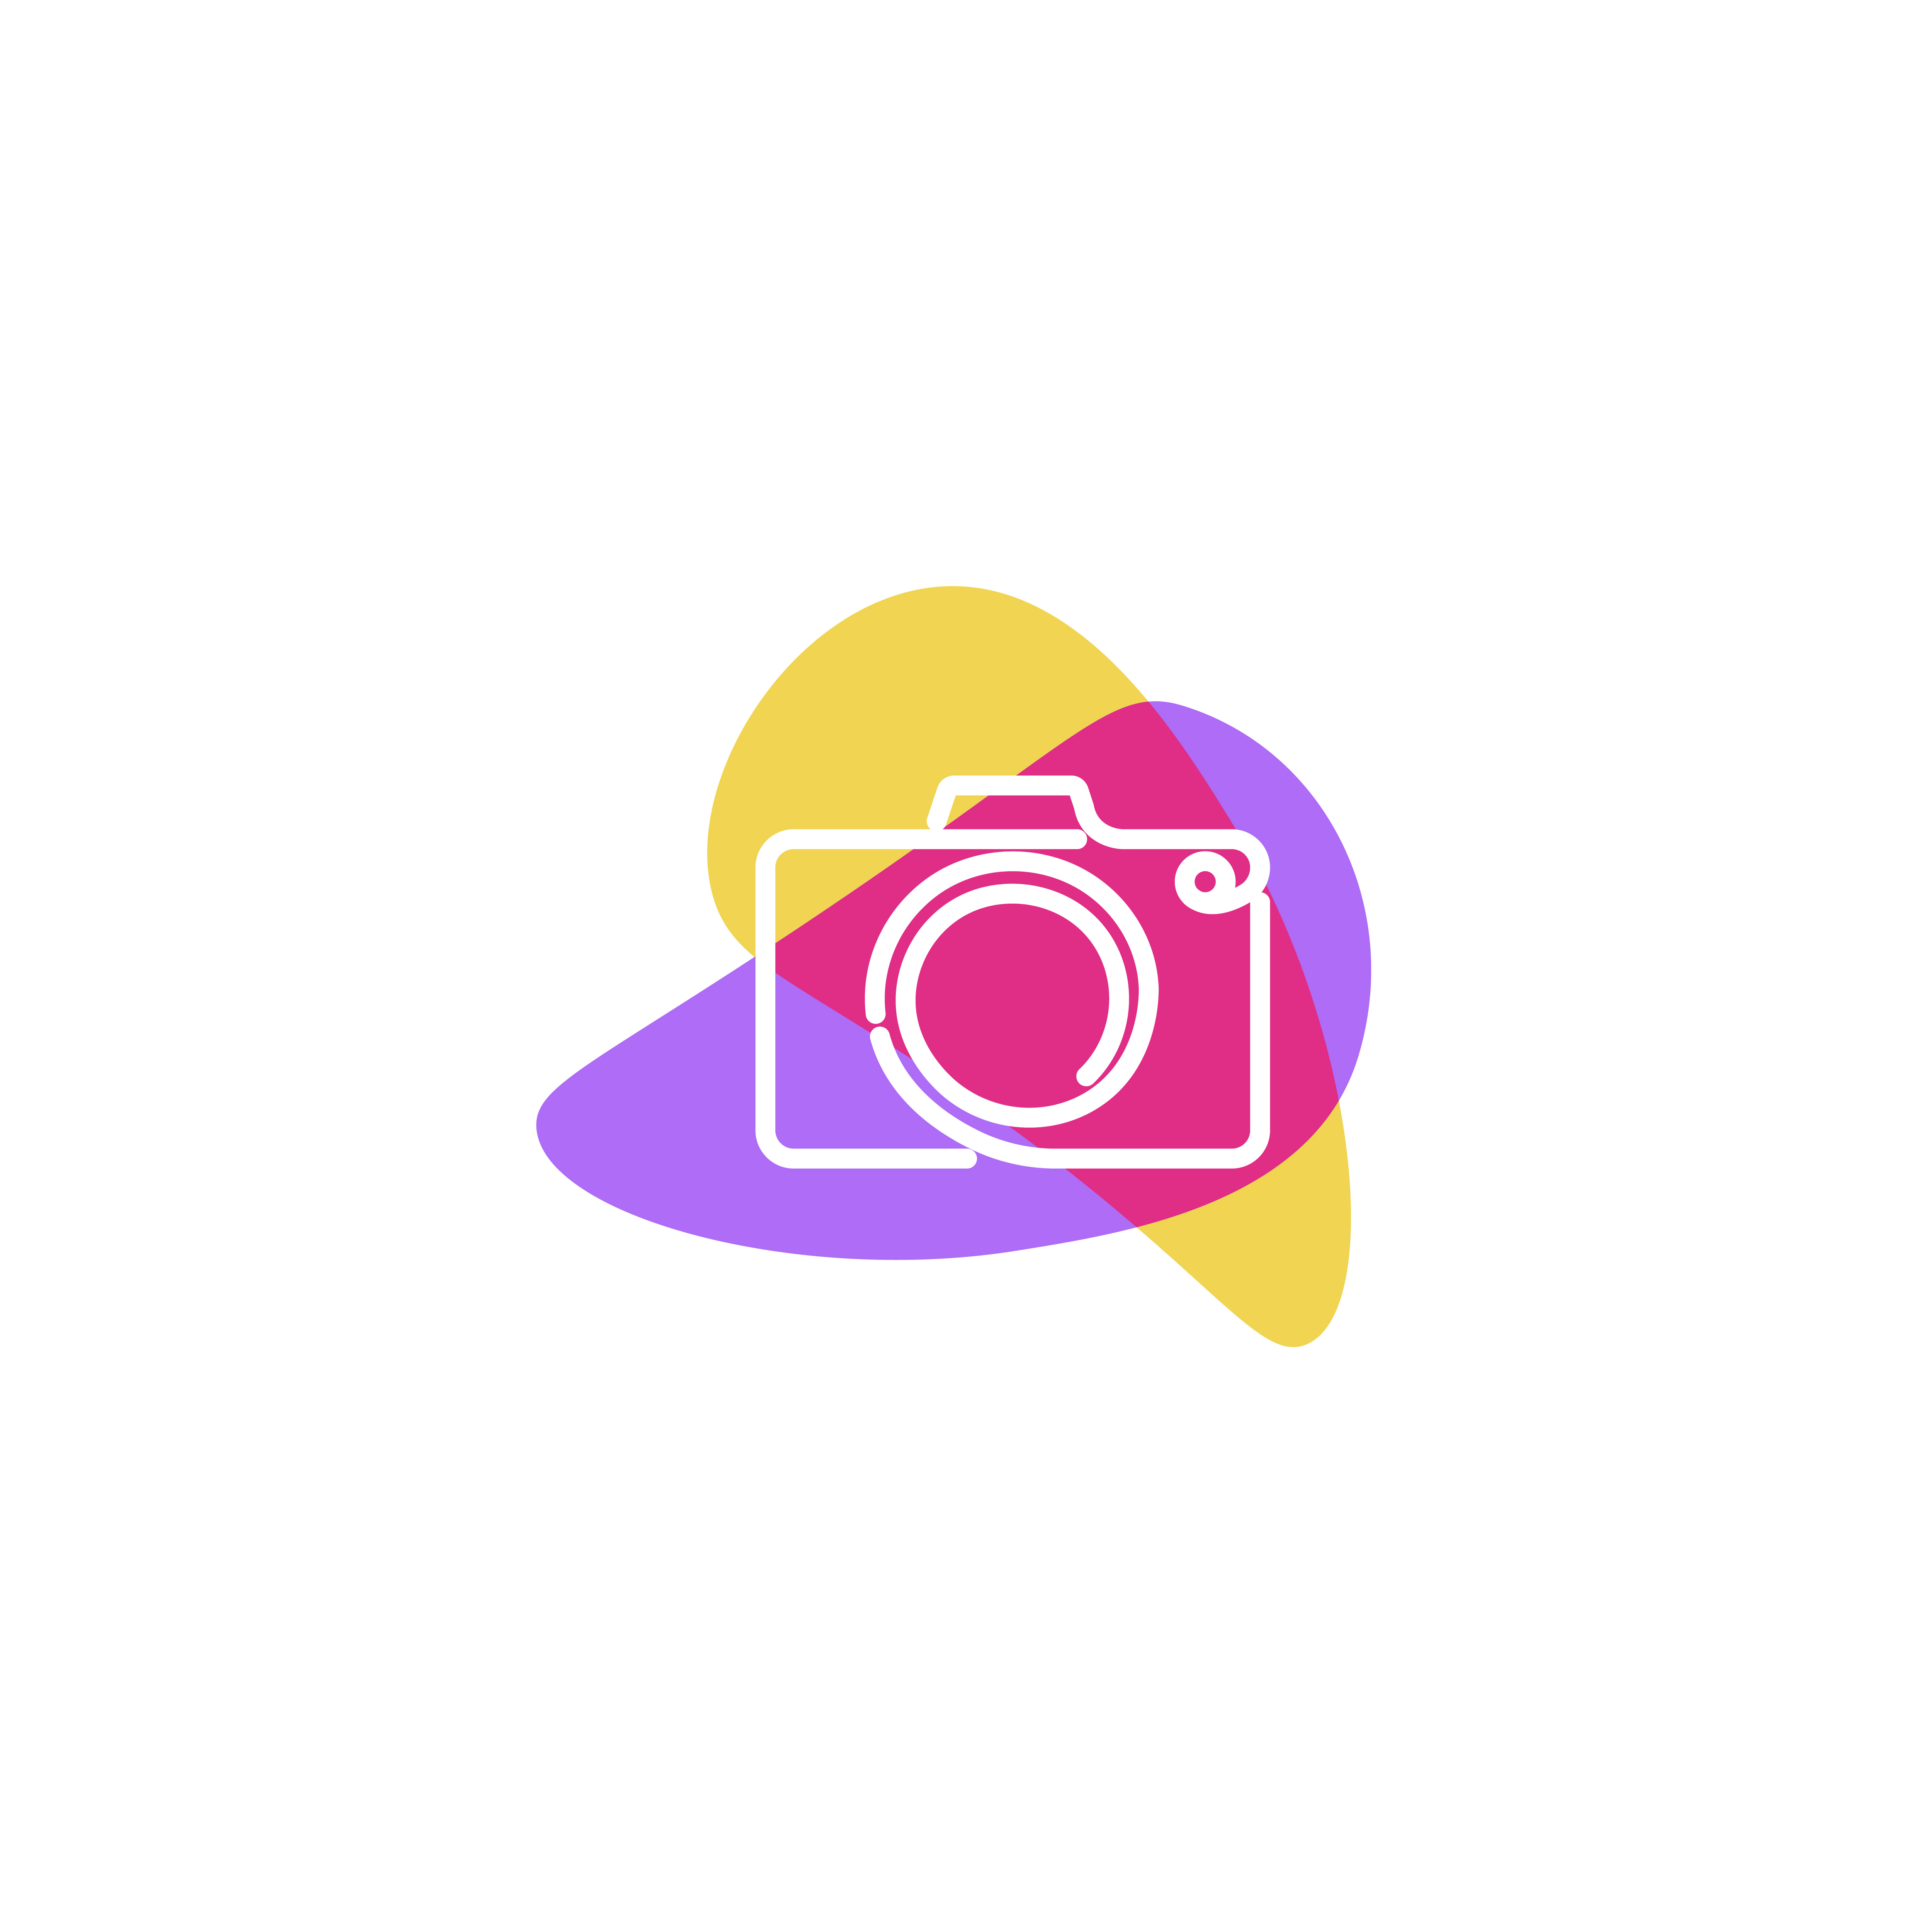 Creative Logo With Photo Camera Sign For The Photographer Black Line With Yellow Background Flat Modern Logotype Download Free Vectors Clipart Graphics Vector Art